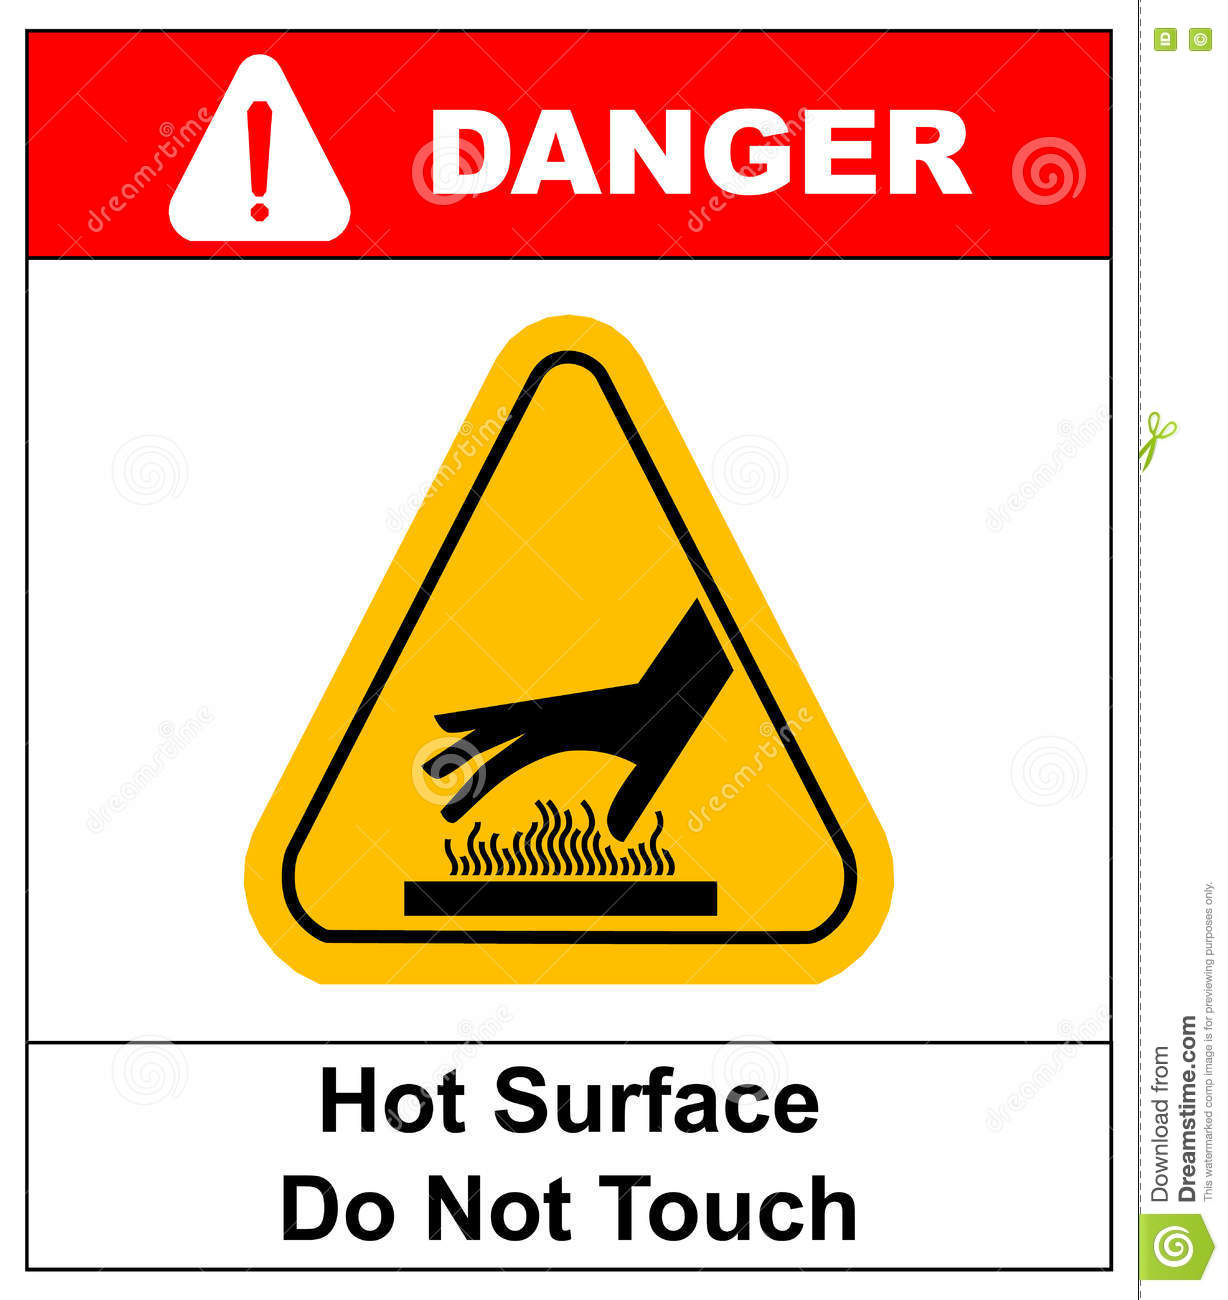 Do not touch hot surface danger signs illustration vector